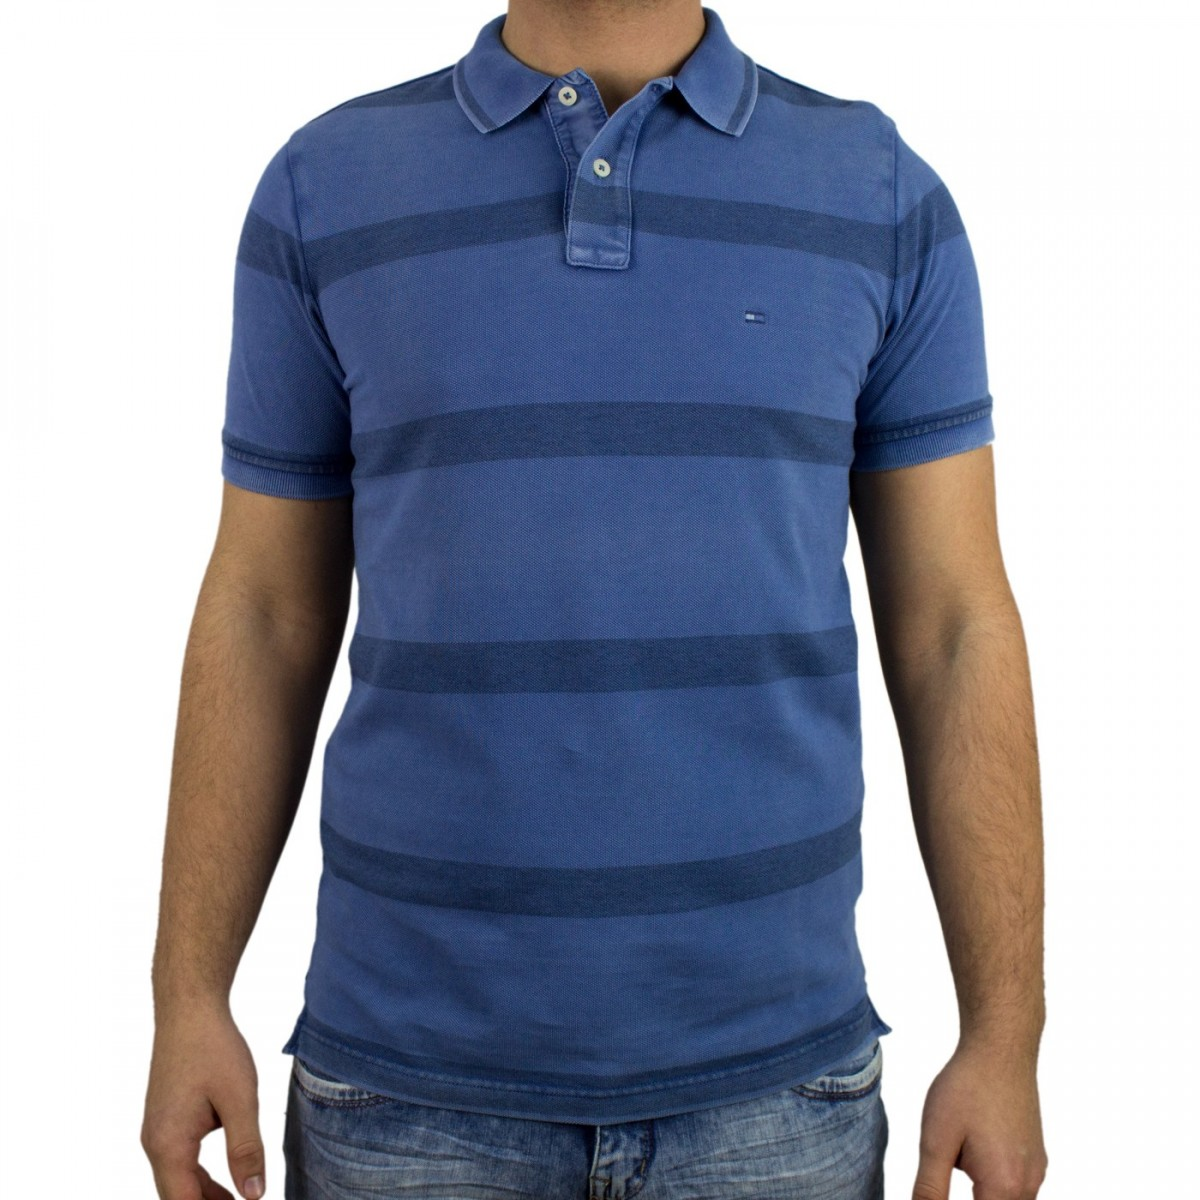 Bizz Store - Camisa Polo Masculina Tommy Hilfiger Slim Fit Azul 33850168120eb